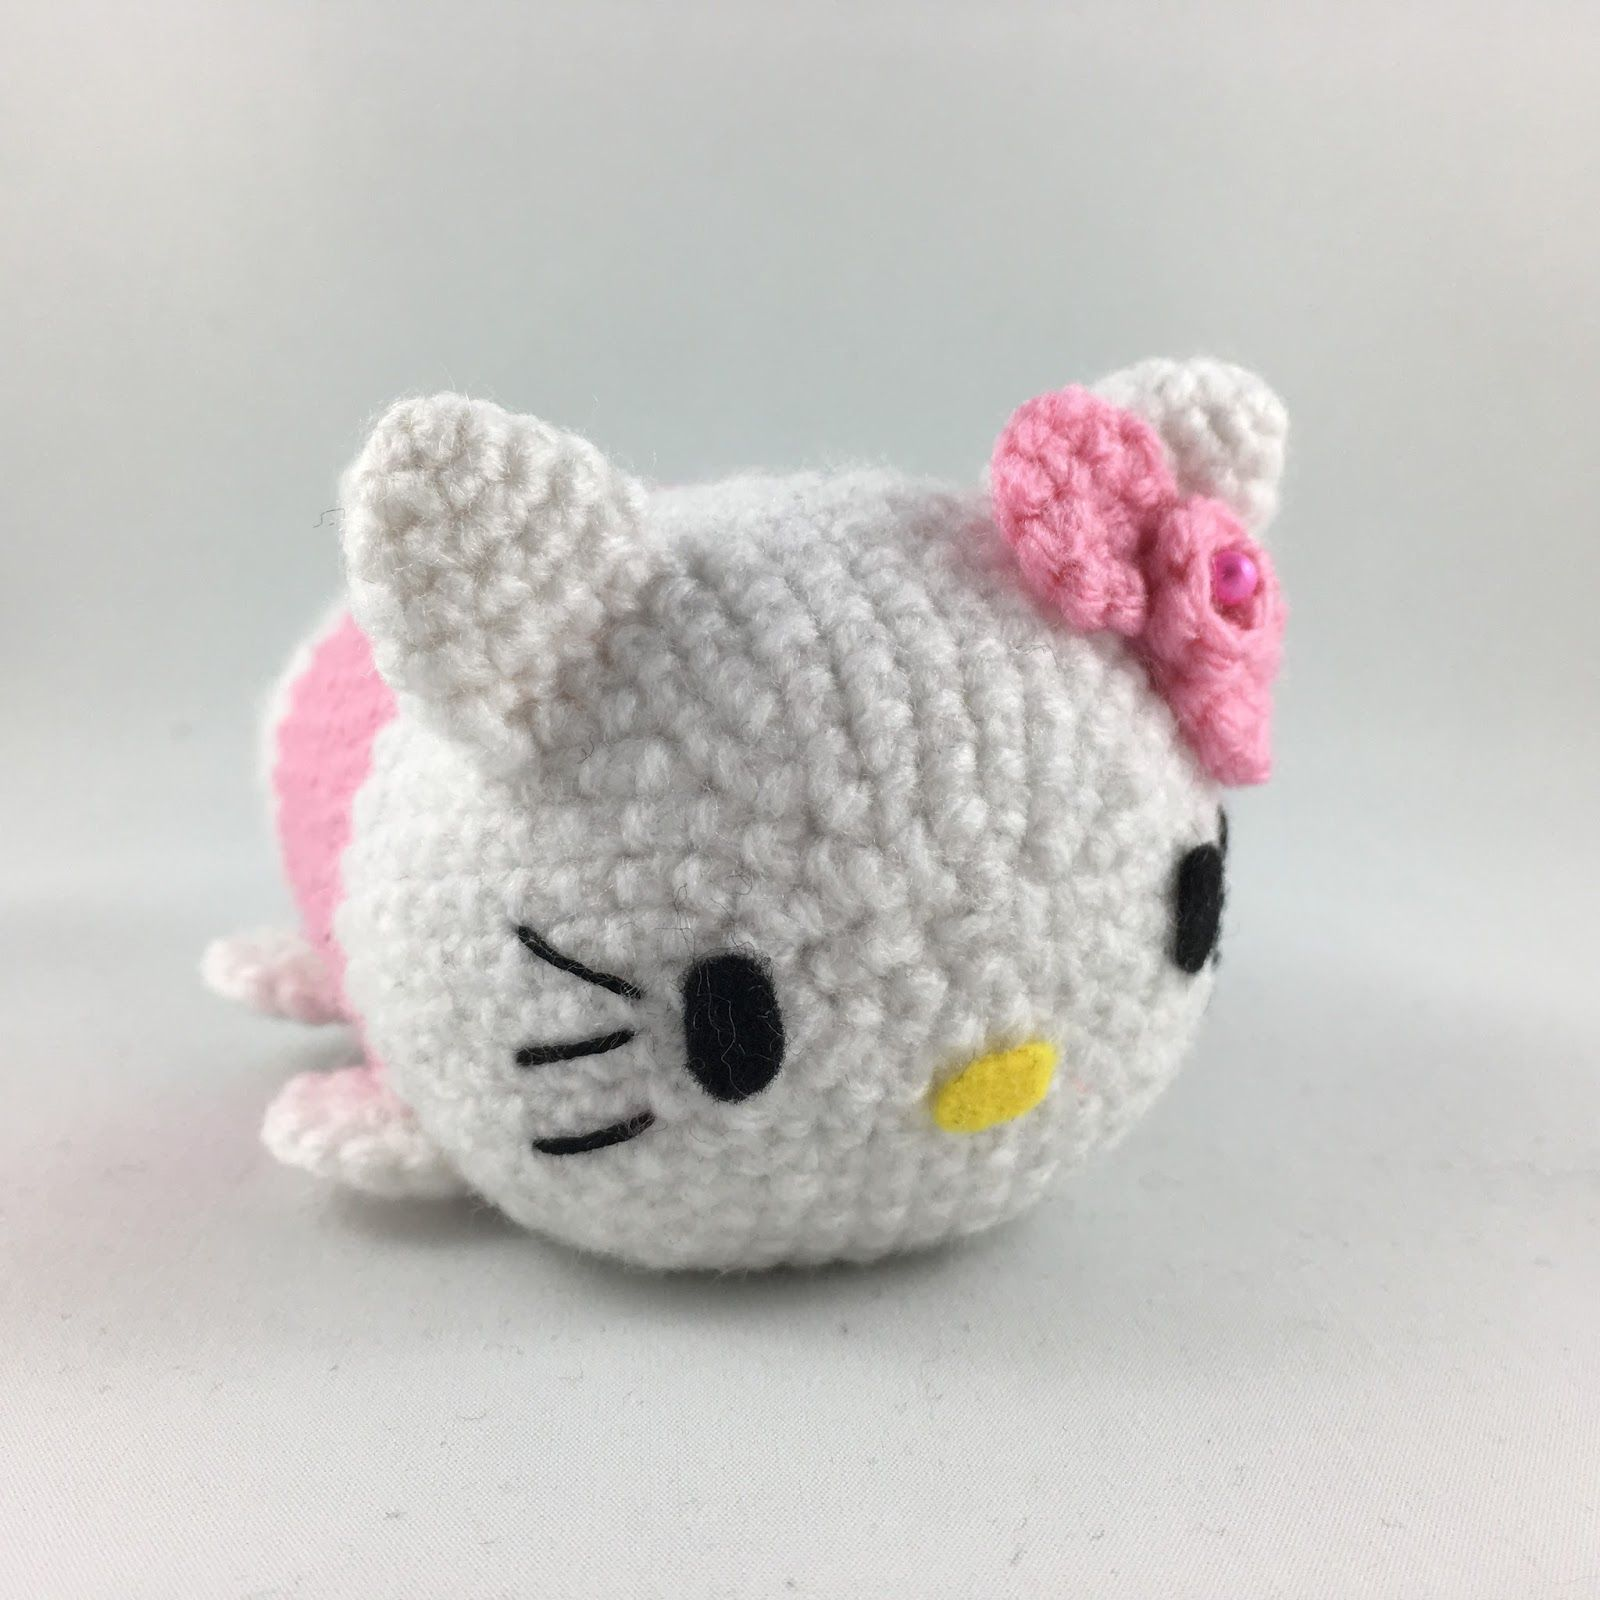 A blog about crafting, crochet, and amigurumi | crochet | Pinterest ...